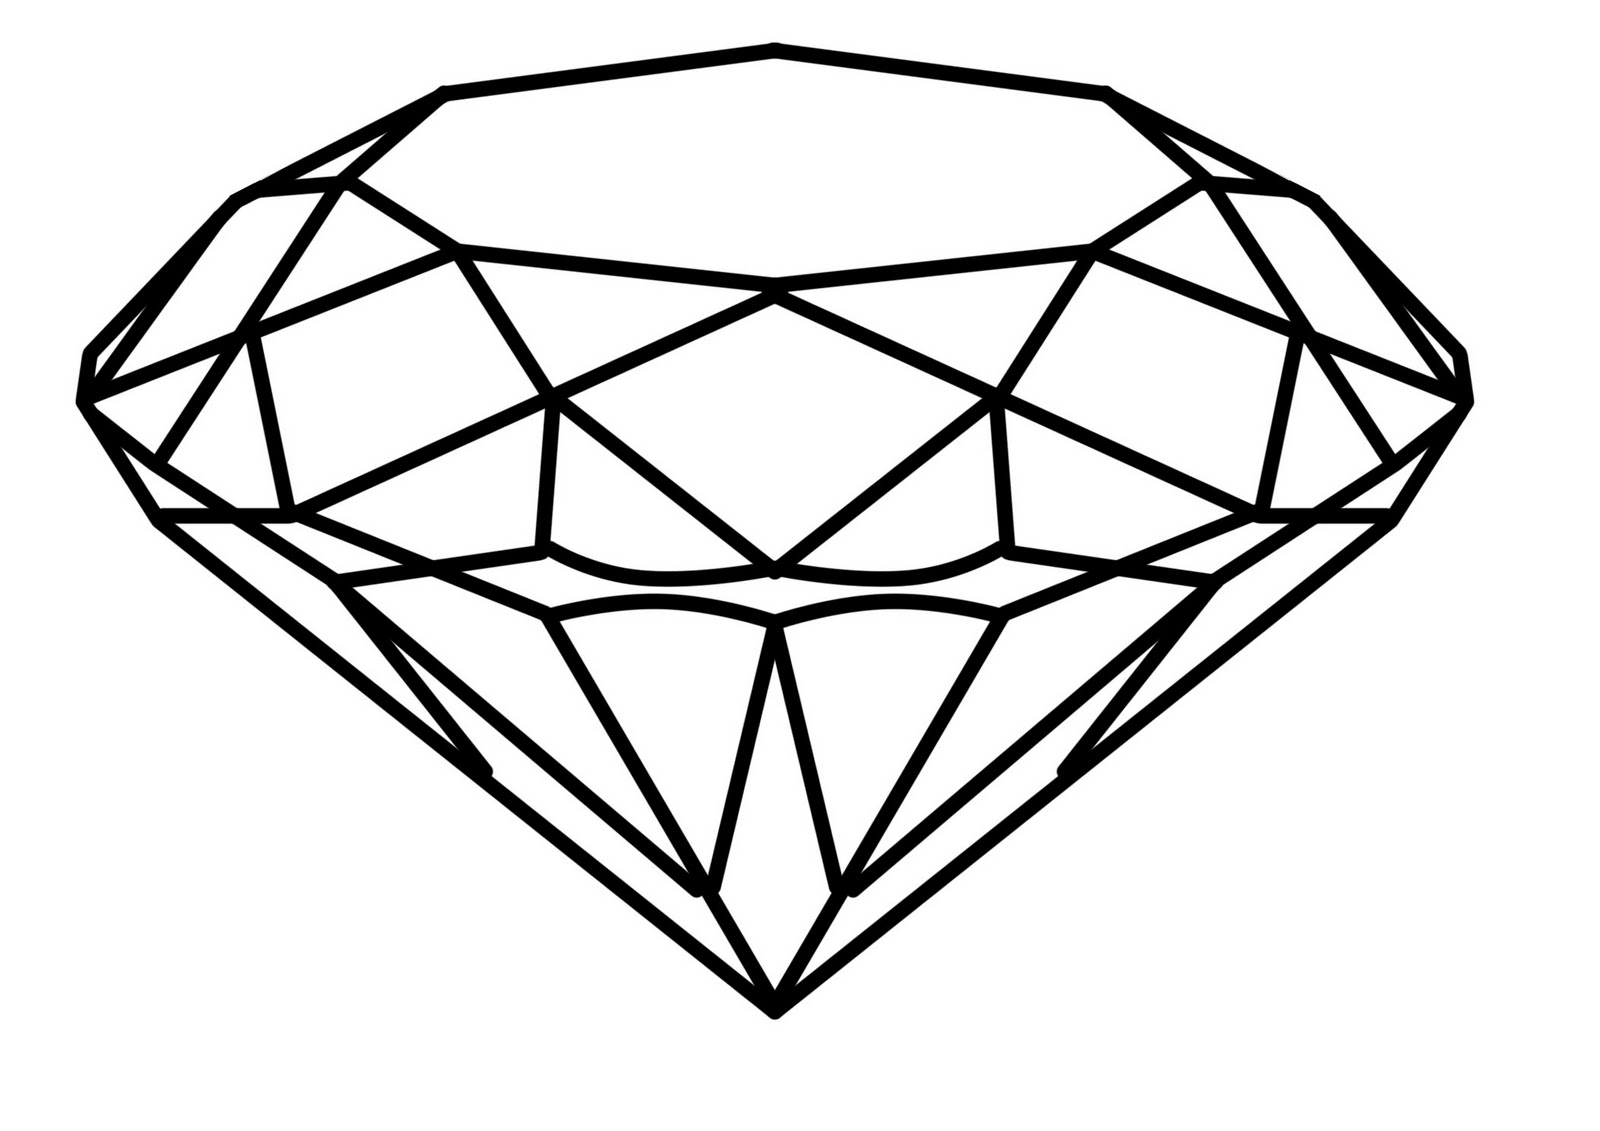 Line Drawing Diamond : Design practice how to our individual tasks and